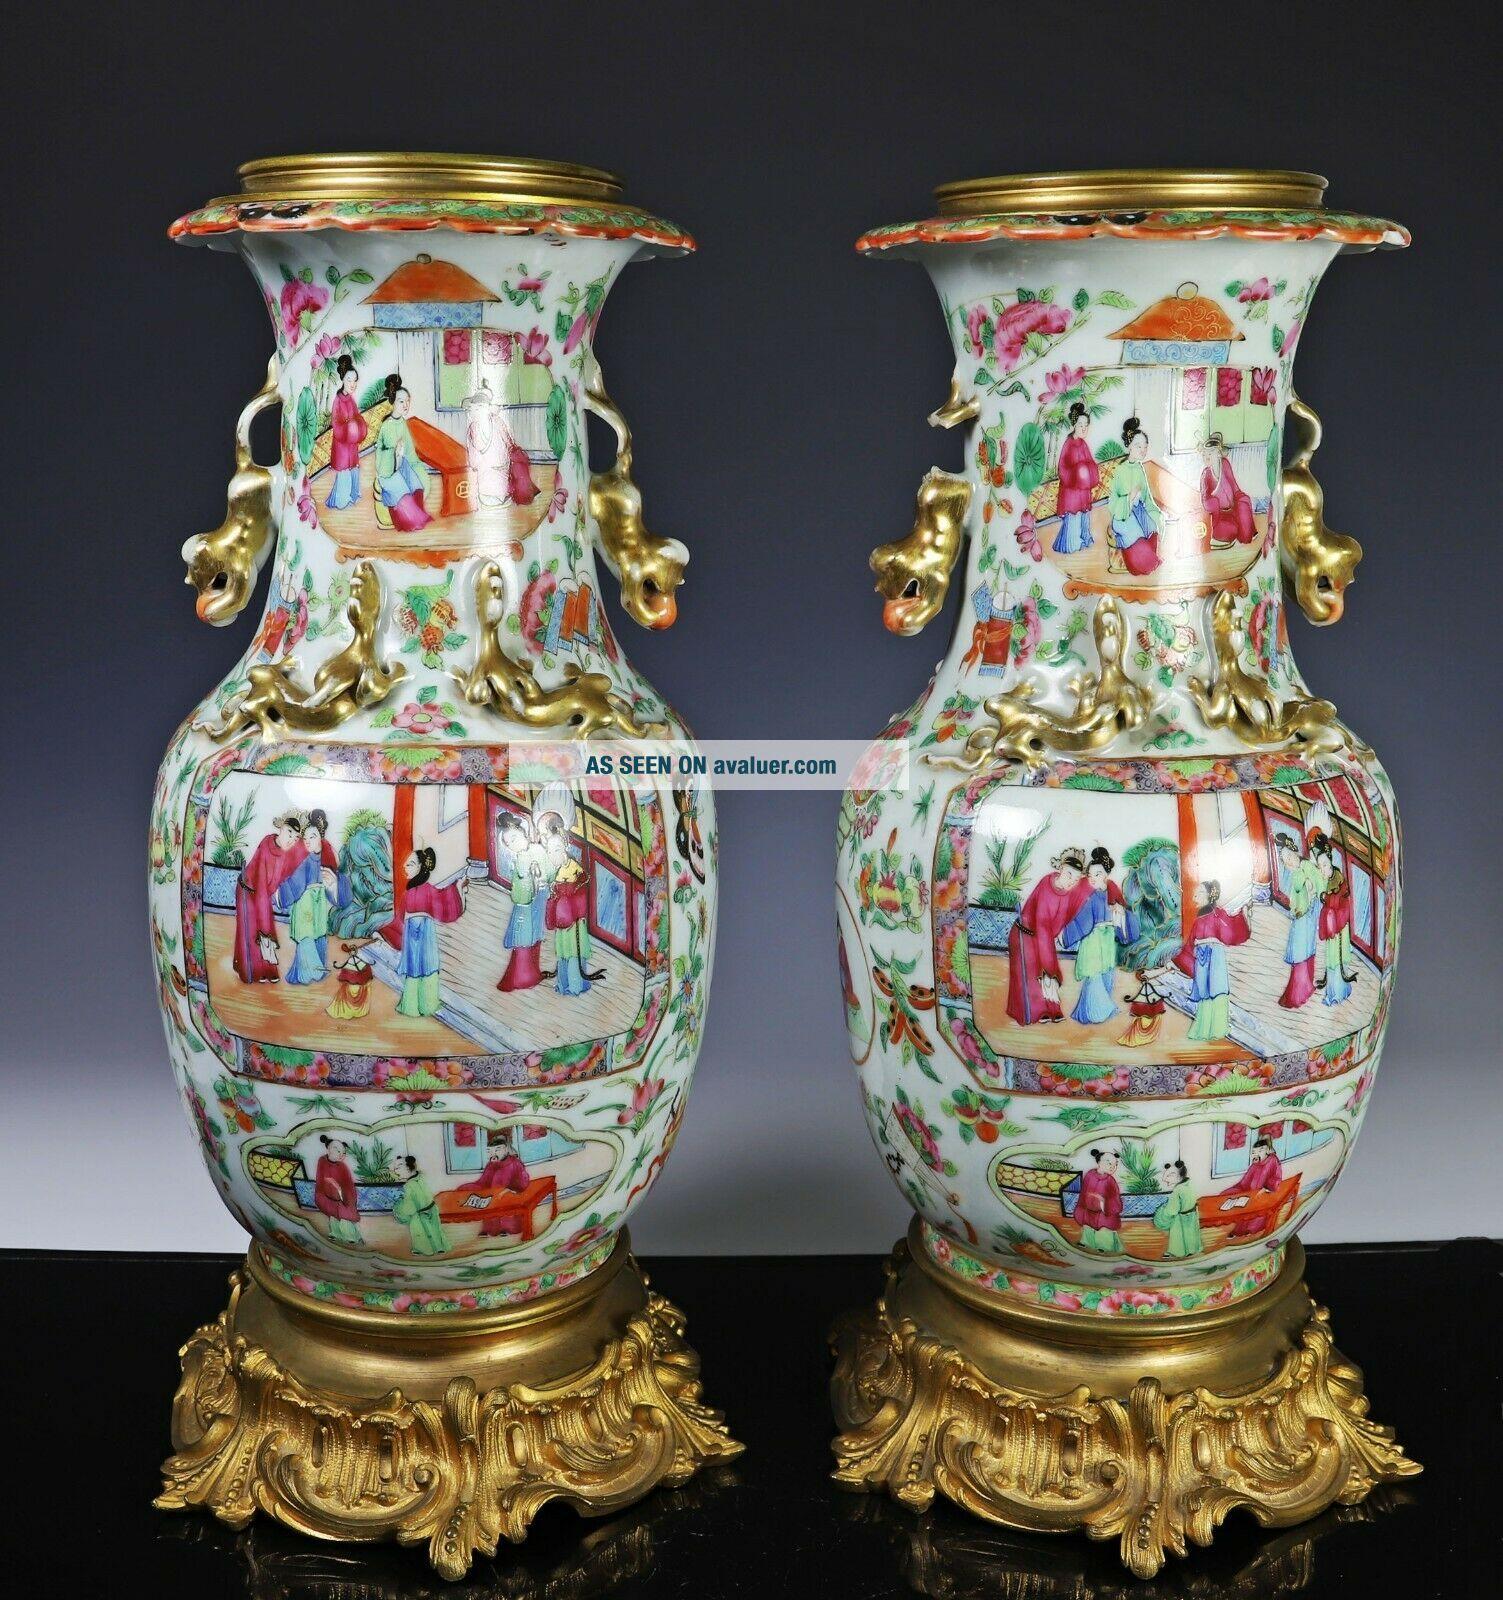 Large Antique Chinese Rose Mandarin Vases with Ormolu Bronze Mounts